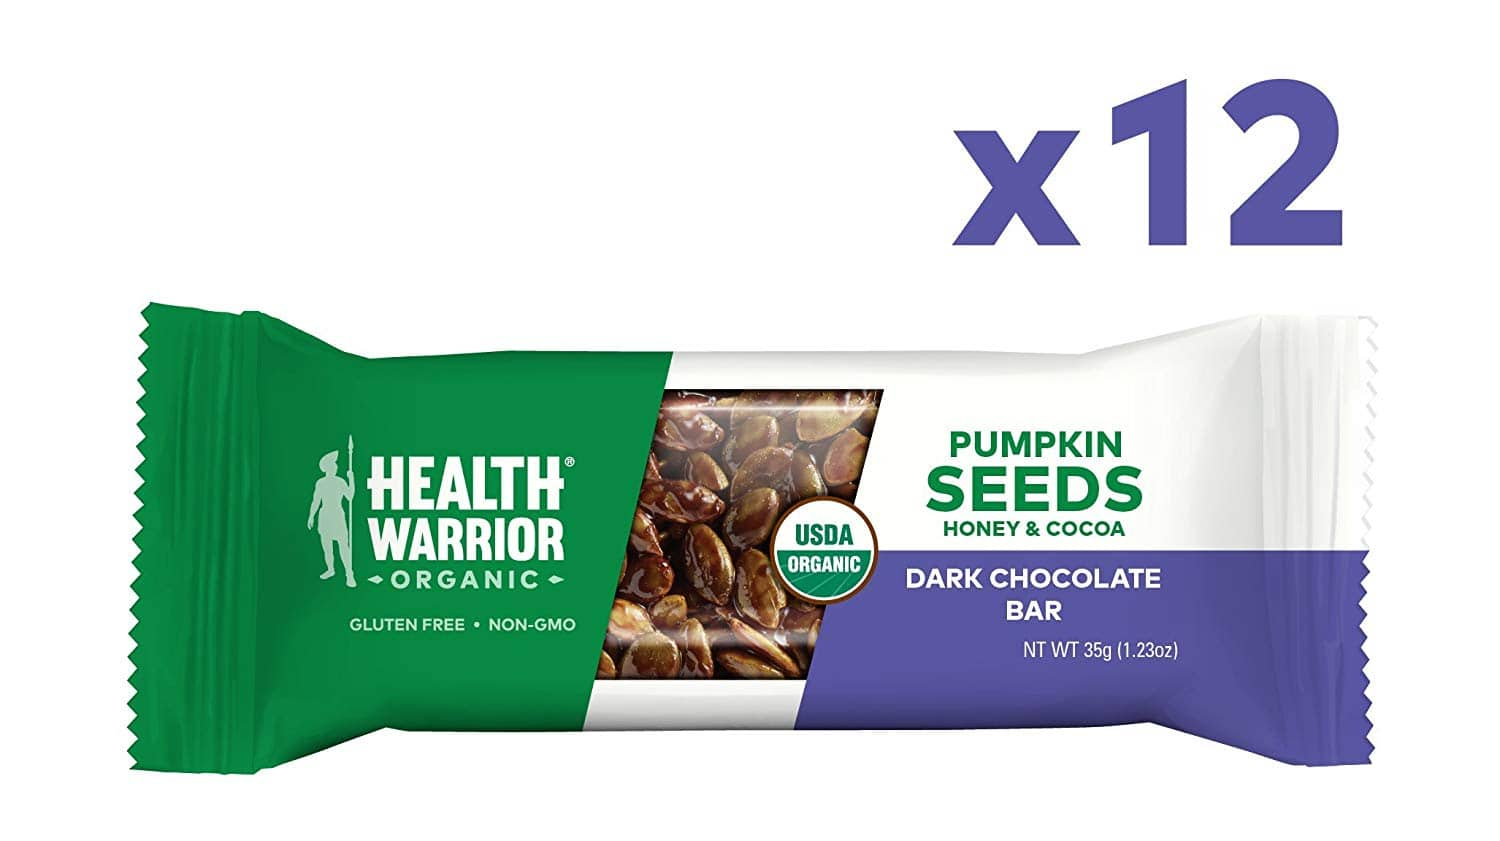 Health Warrior Pumpkin Seed Protein Bars, Dark Chocolate, 8g Plant Protein, Gluten Free, Certified Organic, 12 Count by Health Warrior $6.74 with $3 coupon for S&S $9.74